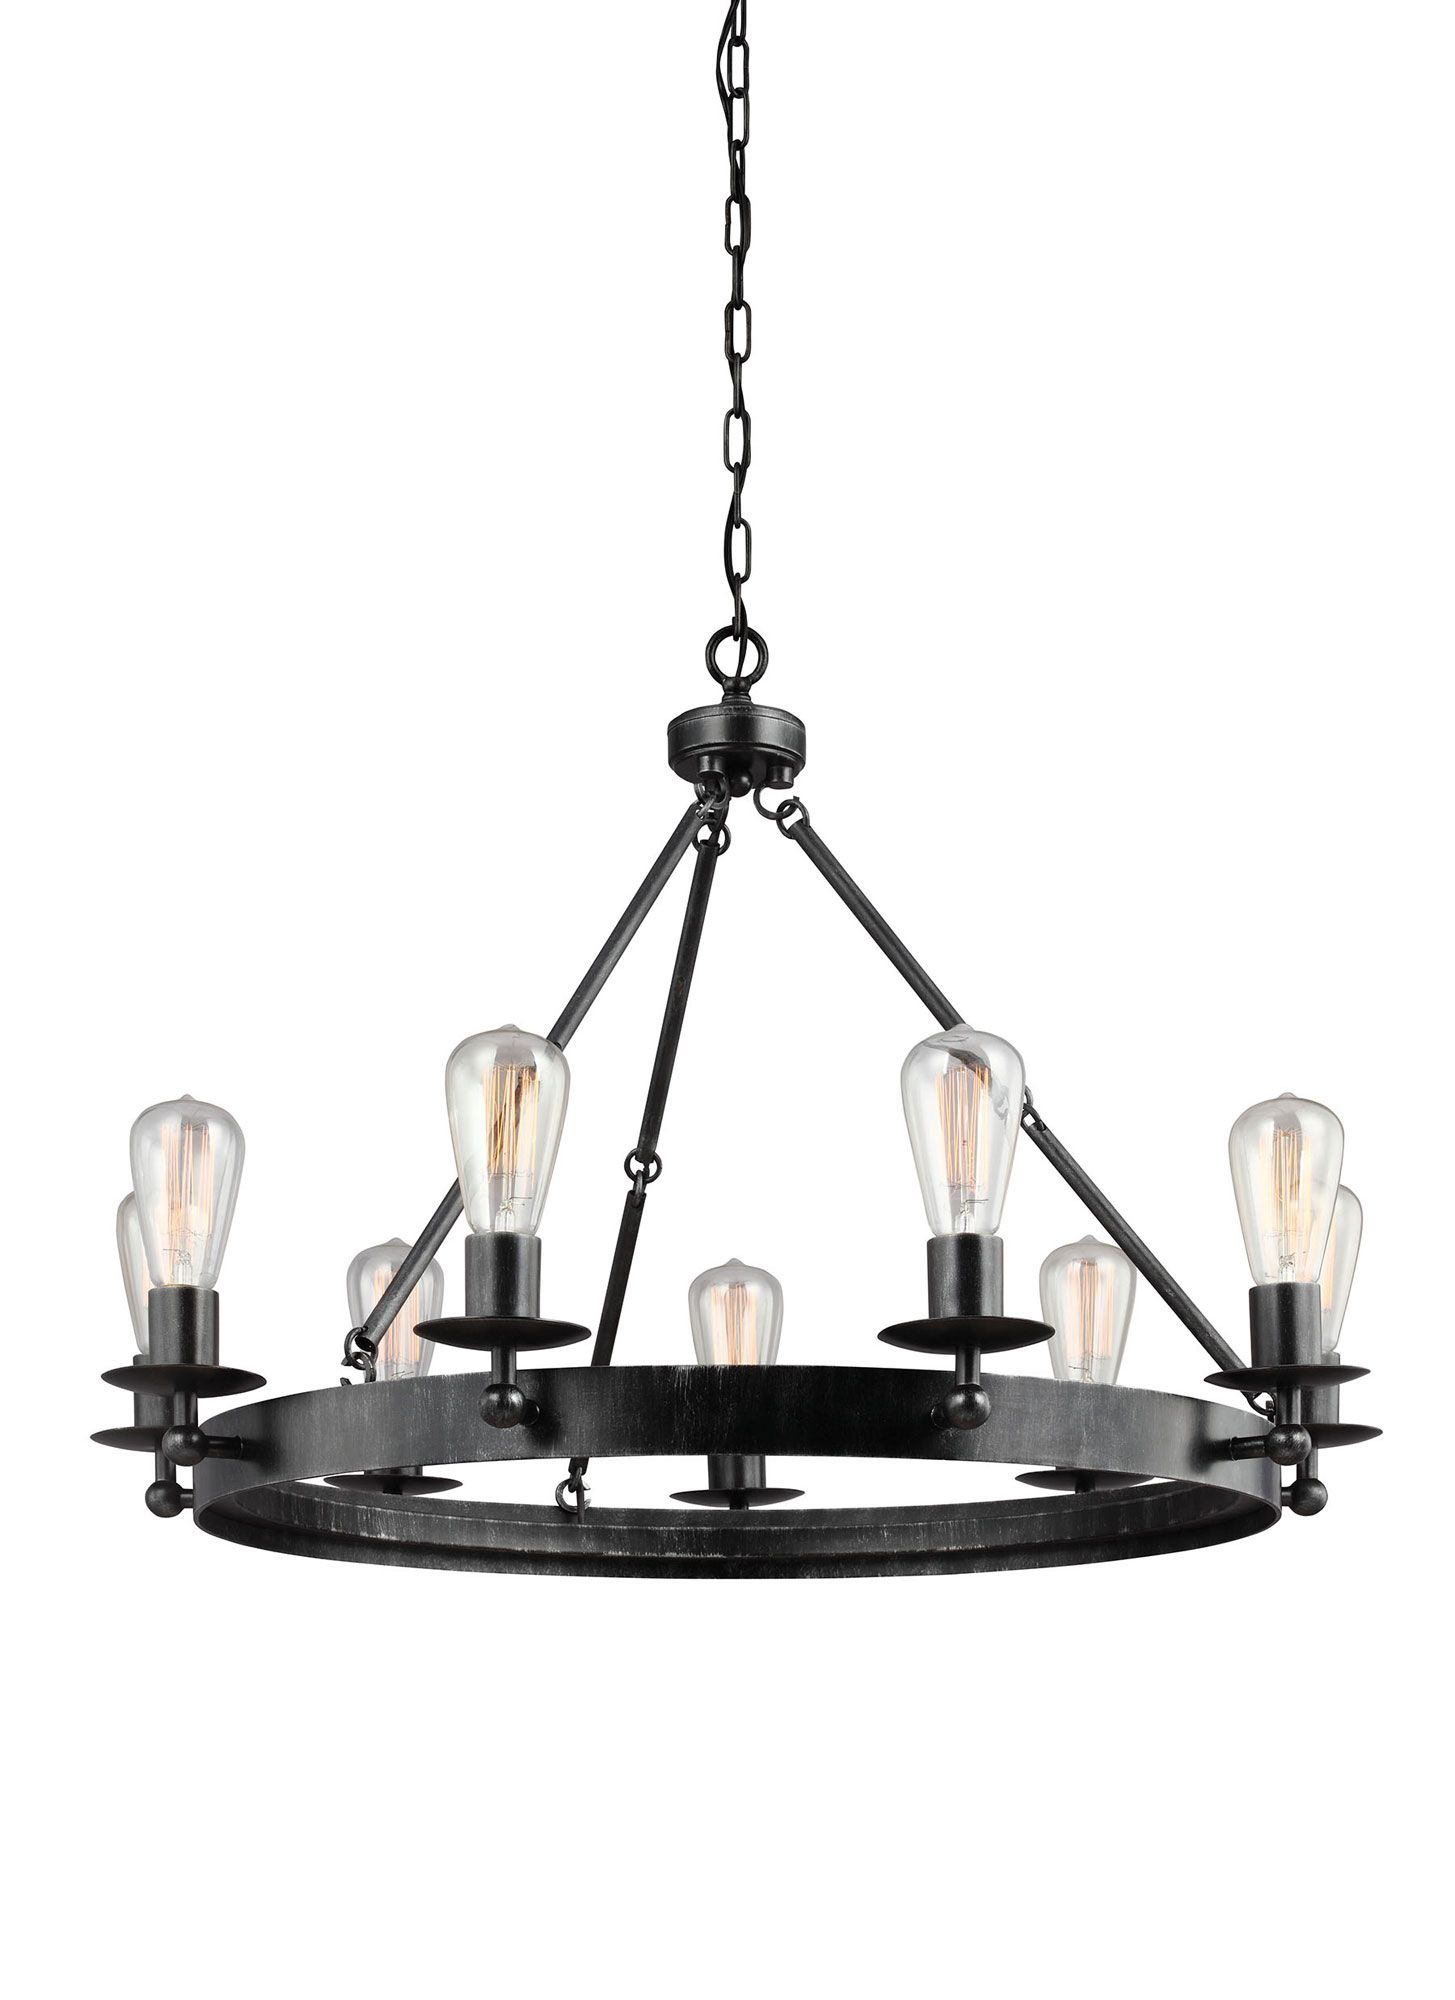 Ravenwood Manor Chandelier By Sea Gull Lighting 3110209 846